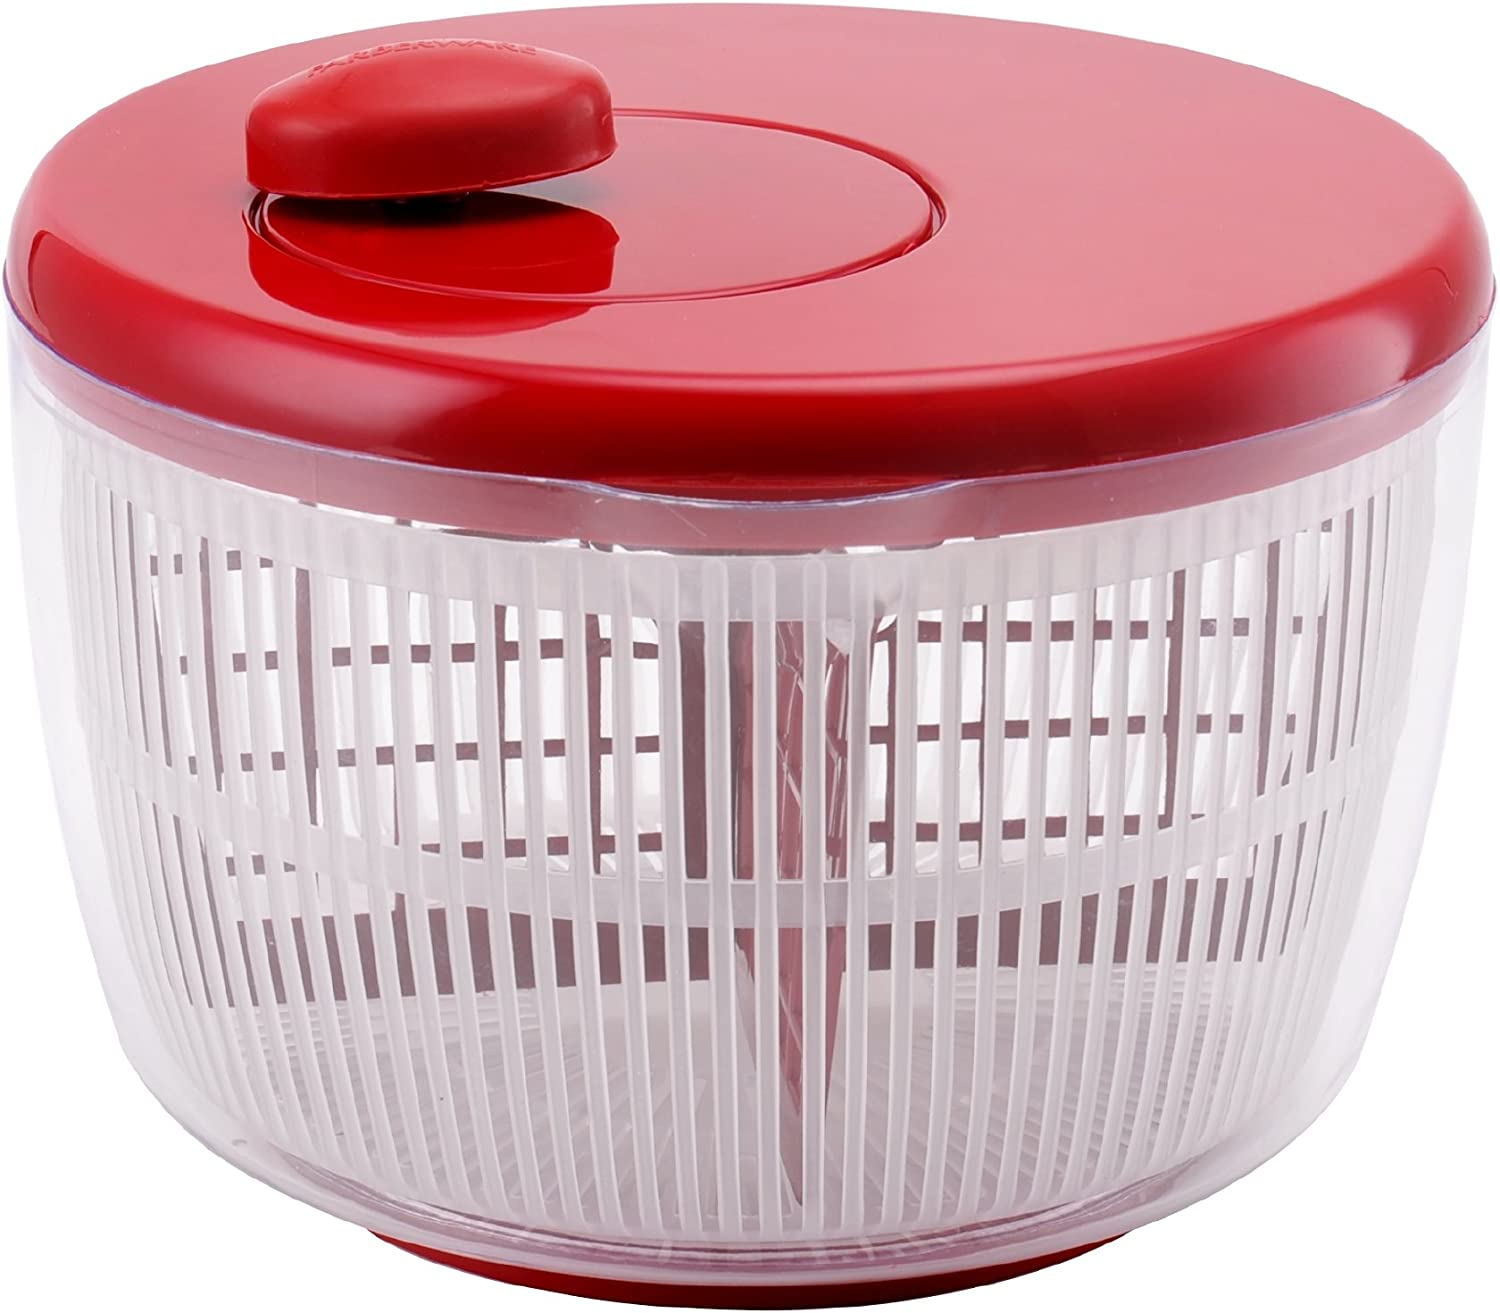 Farberware Professional Salad Spinner, Red